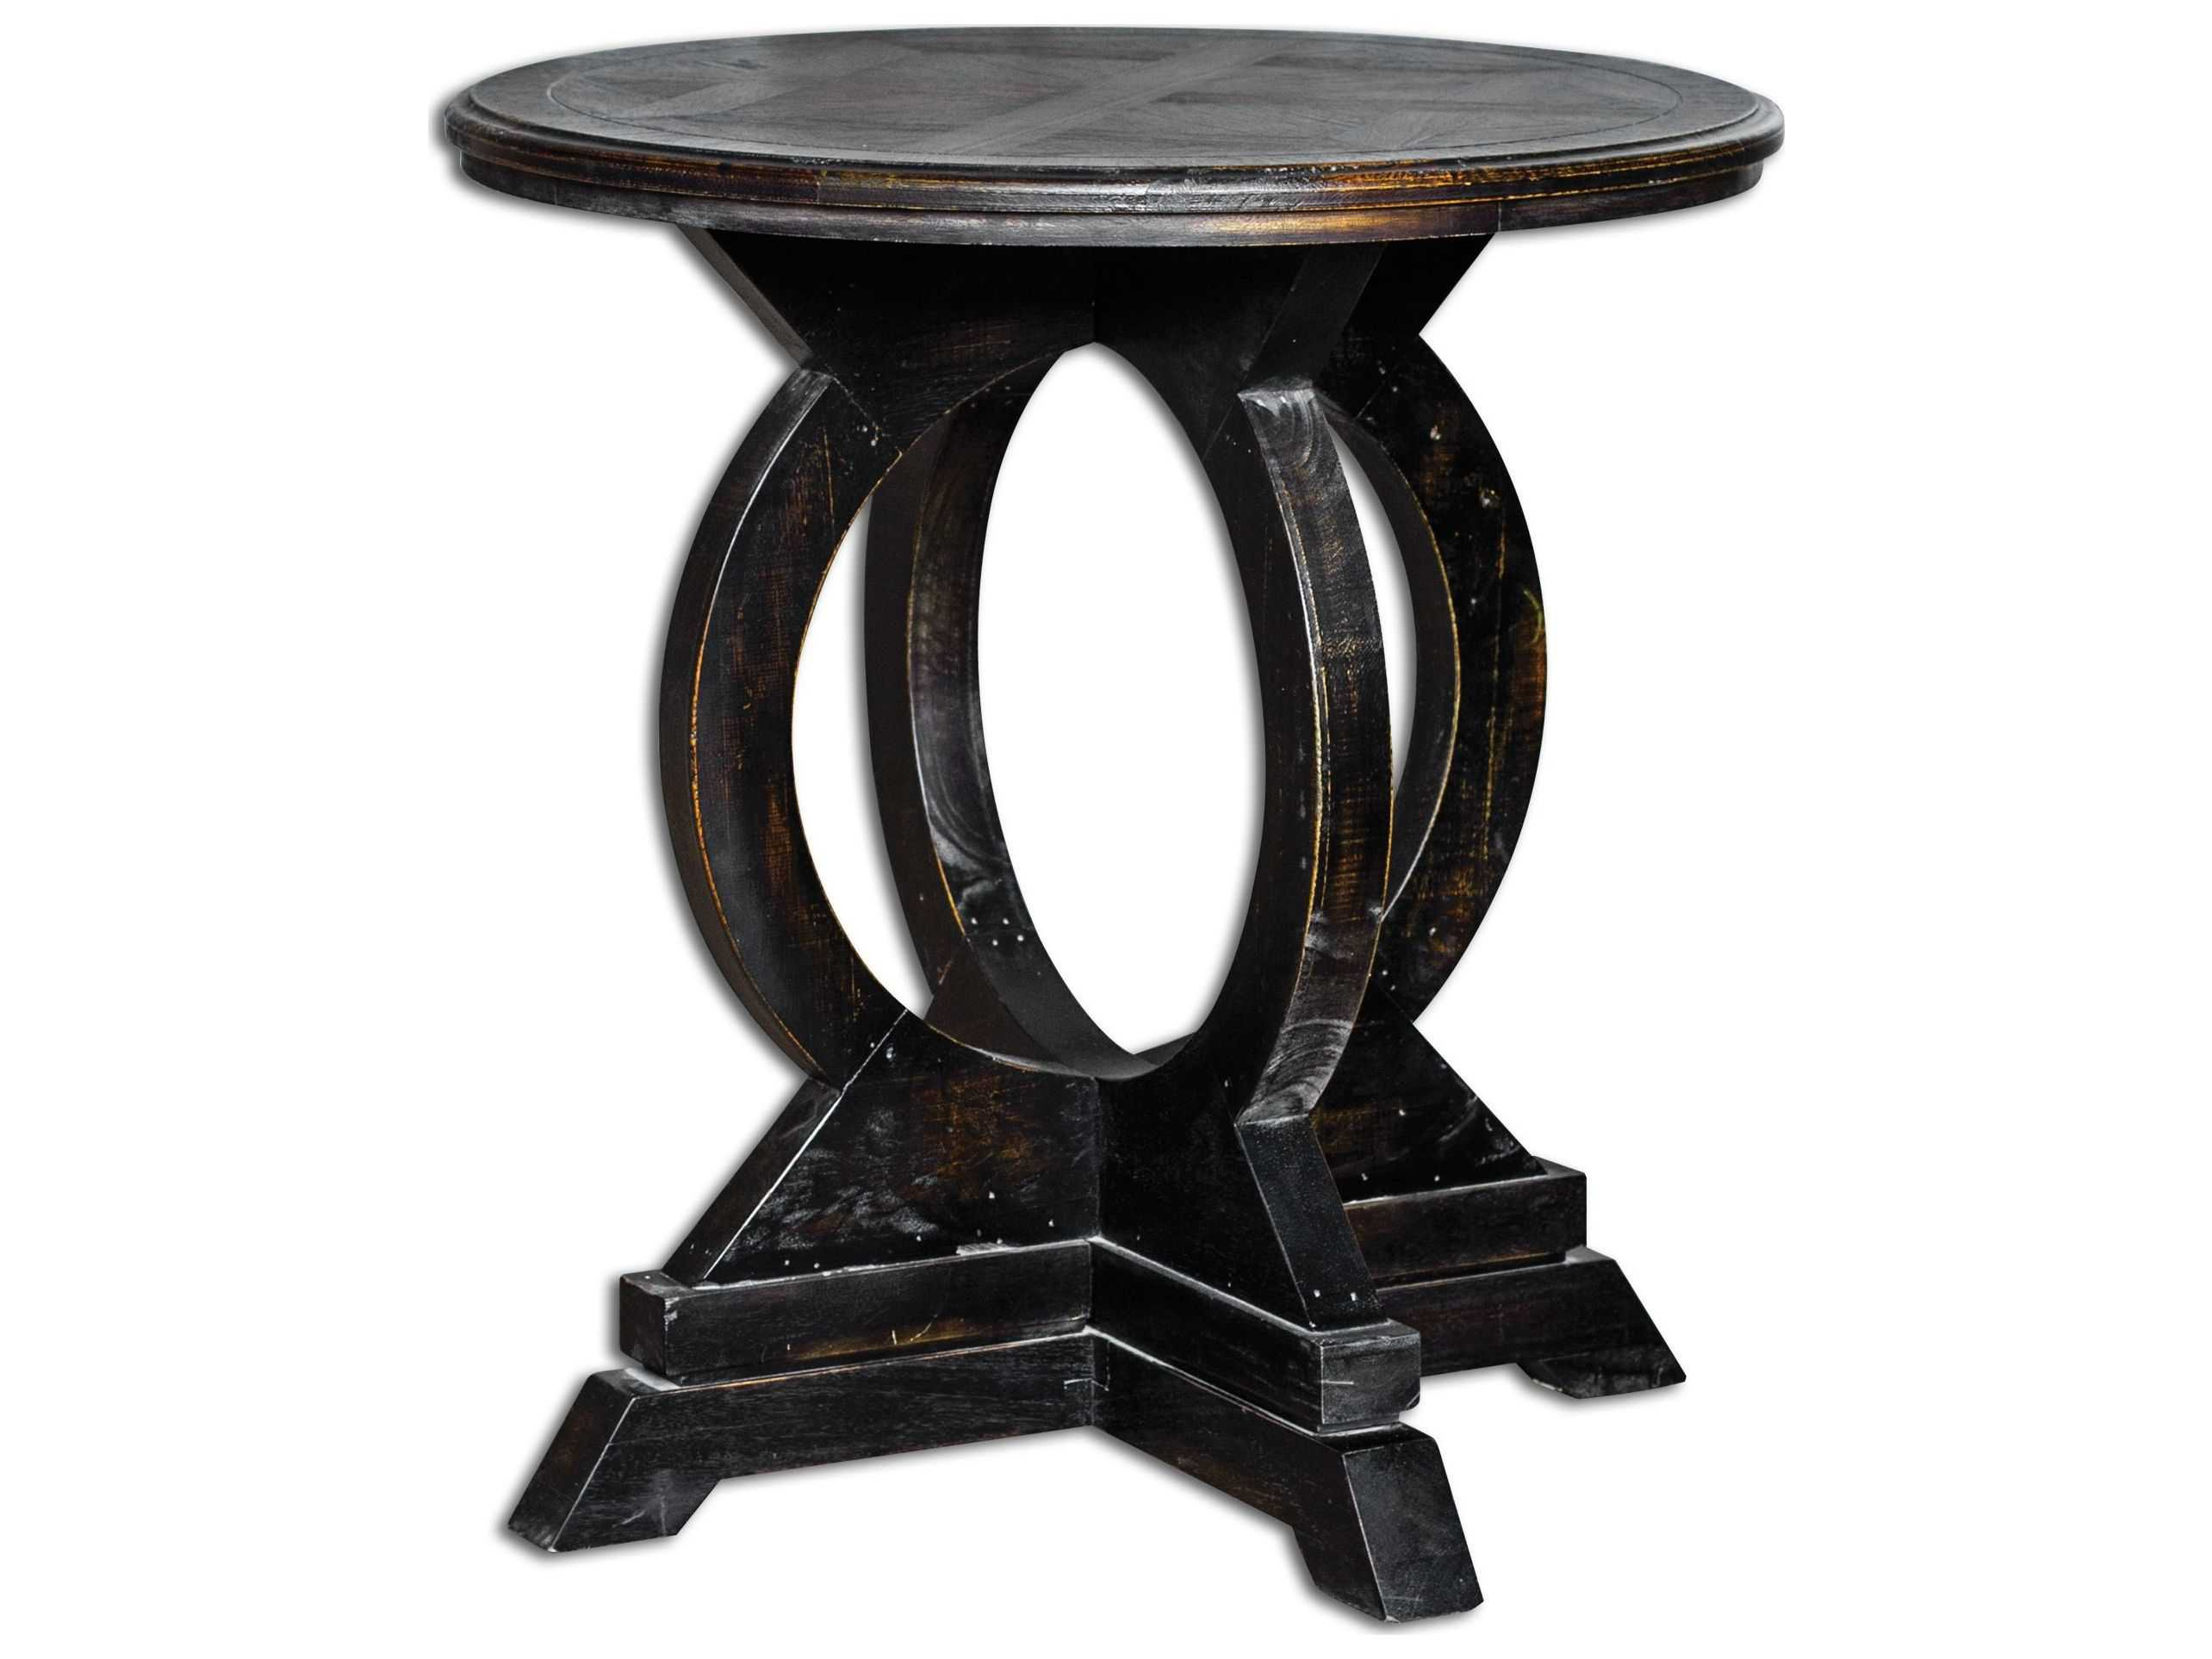 mango pedestal distressed tables faux surprising accent table small round wood threshold red woodworking white metal plans gorgeous reclaimed wooden target teal full size narrow